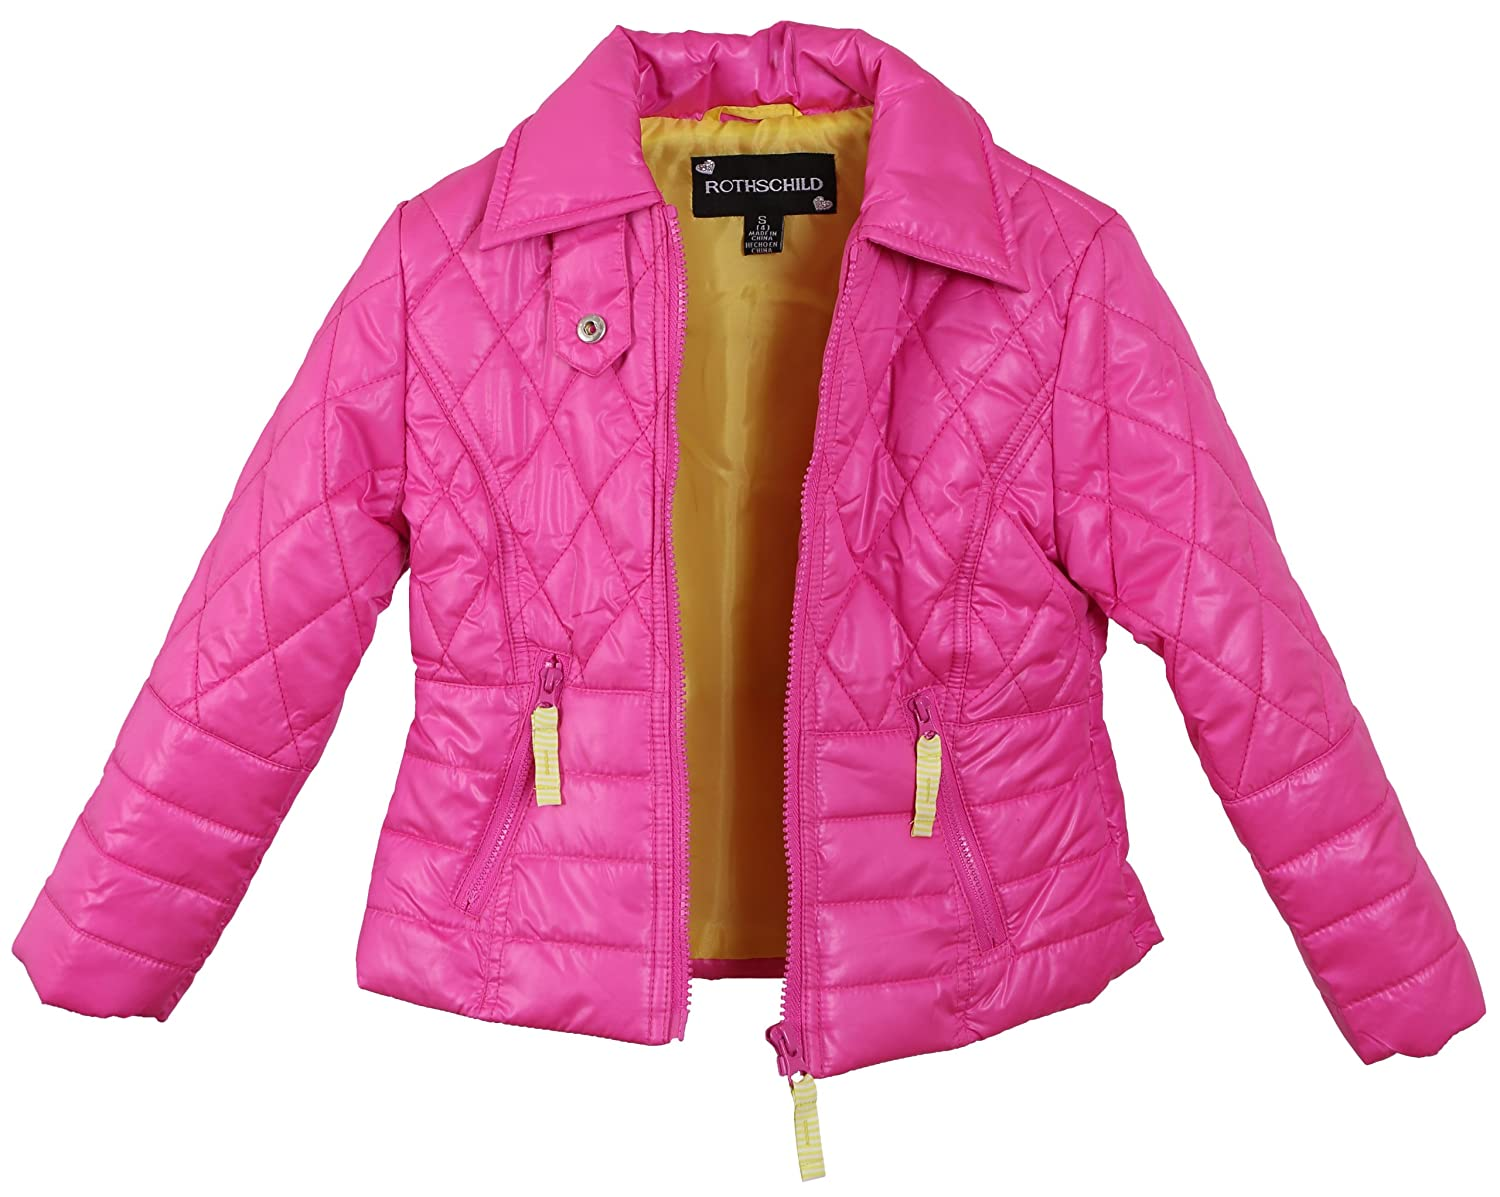 Size 6X Rock Candy Rothschild Girls Quilted Rain Trench Spring Zipped Jacket